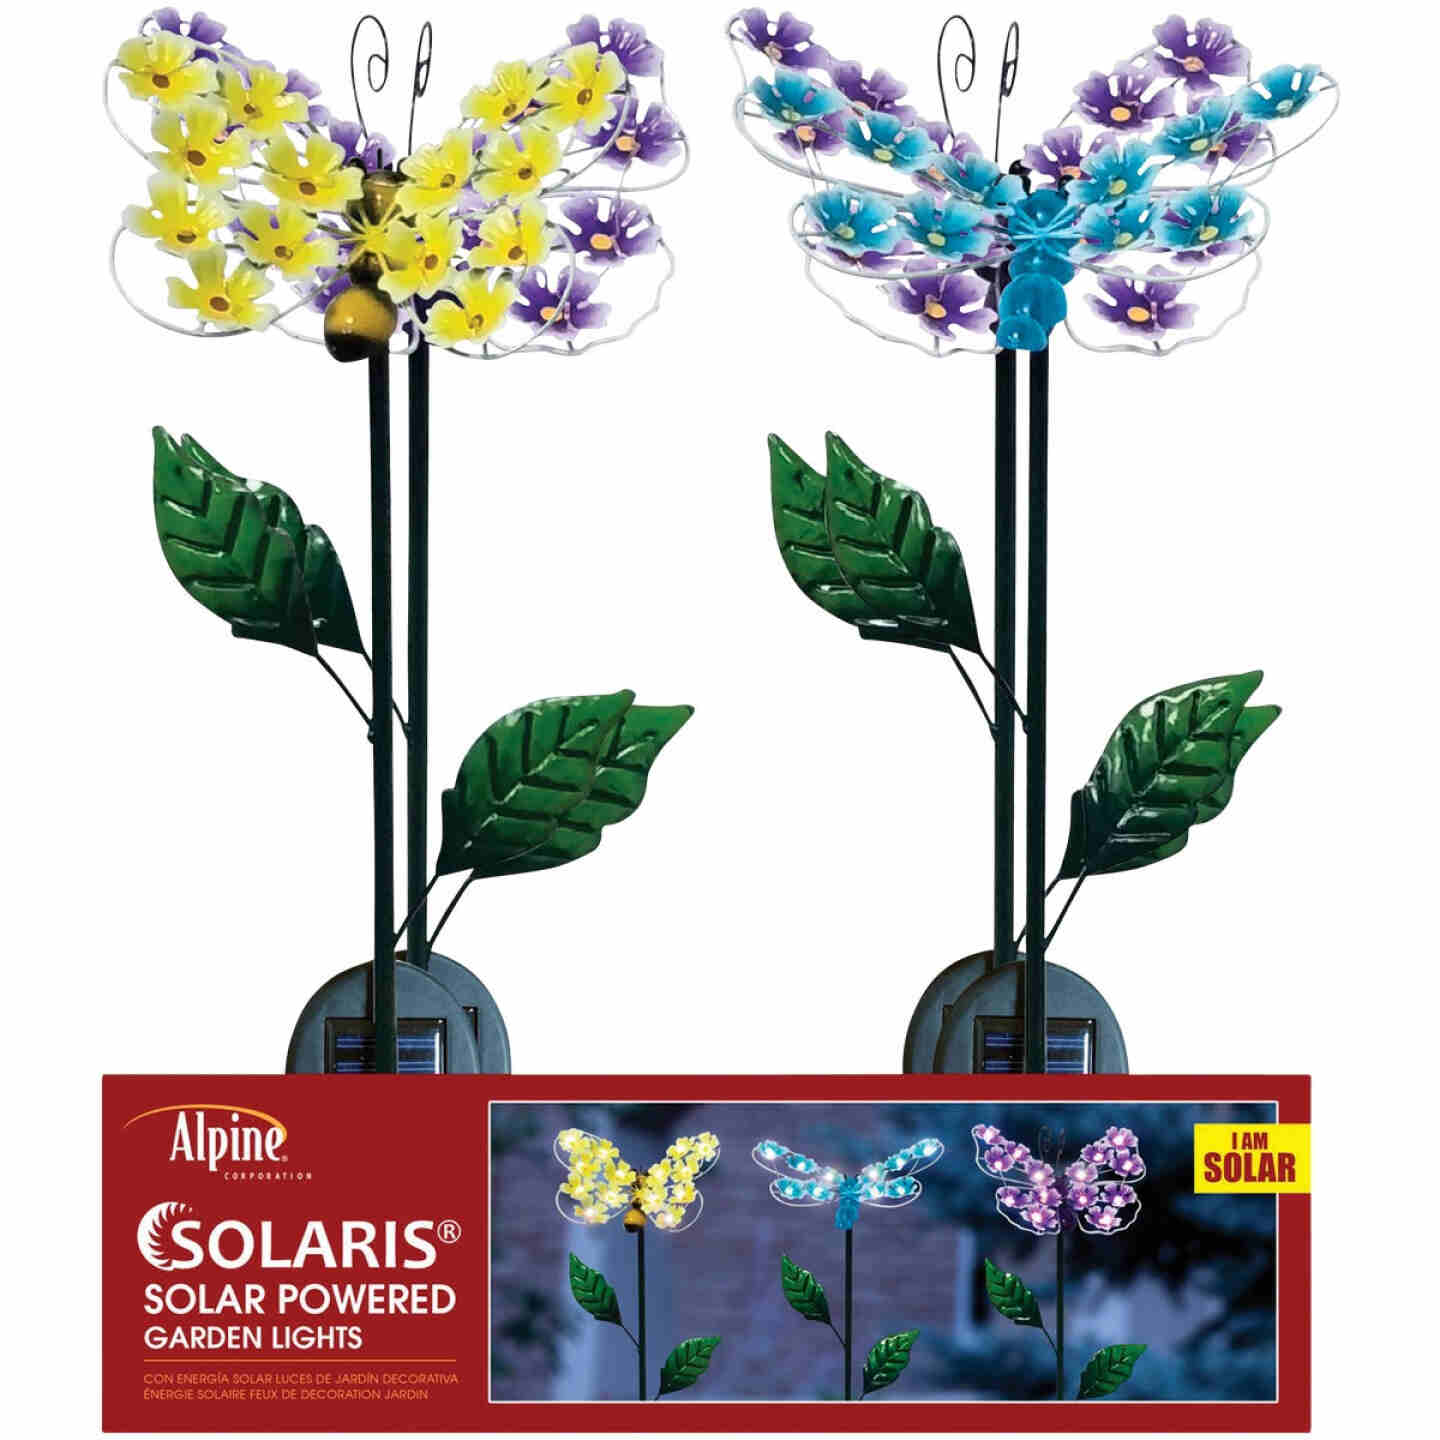 Alpine Metal 33 In. H. Insect with Hydrangea Wings Solar Stake Light Image 3